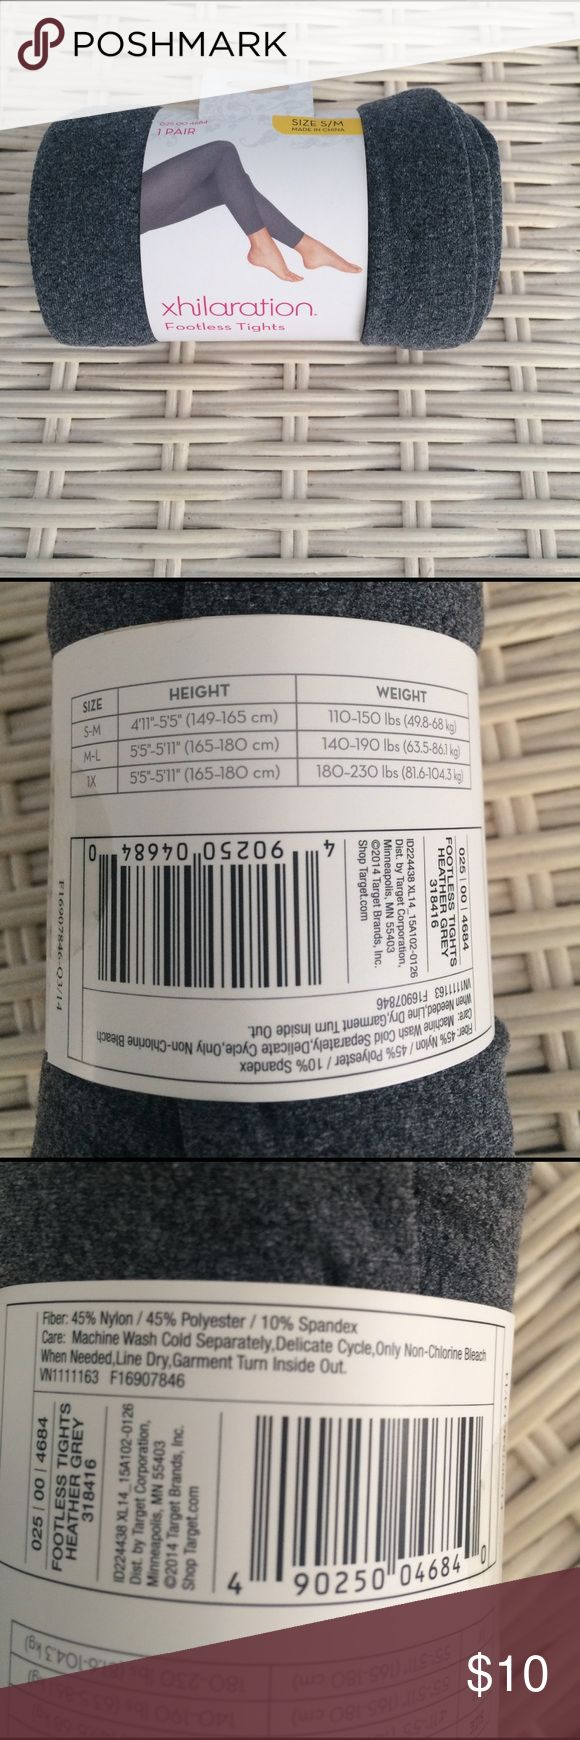 NWT XHILARATION GREY FOOTLESS TIGHTS SIZE S/M New with tag/package grey footless tights made by xhilaration Xhilaration Accessories Hosiery & Socks